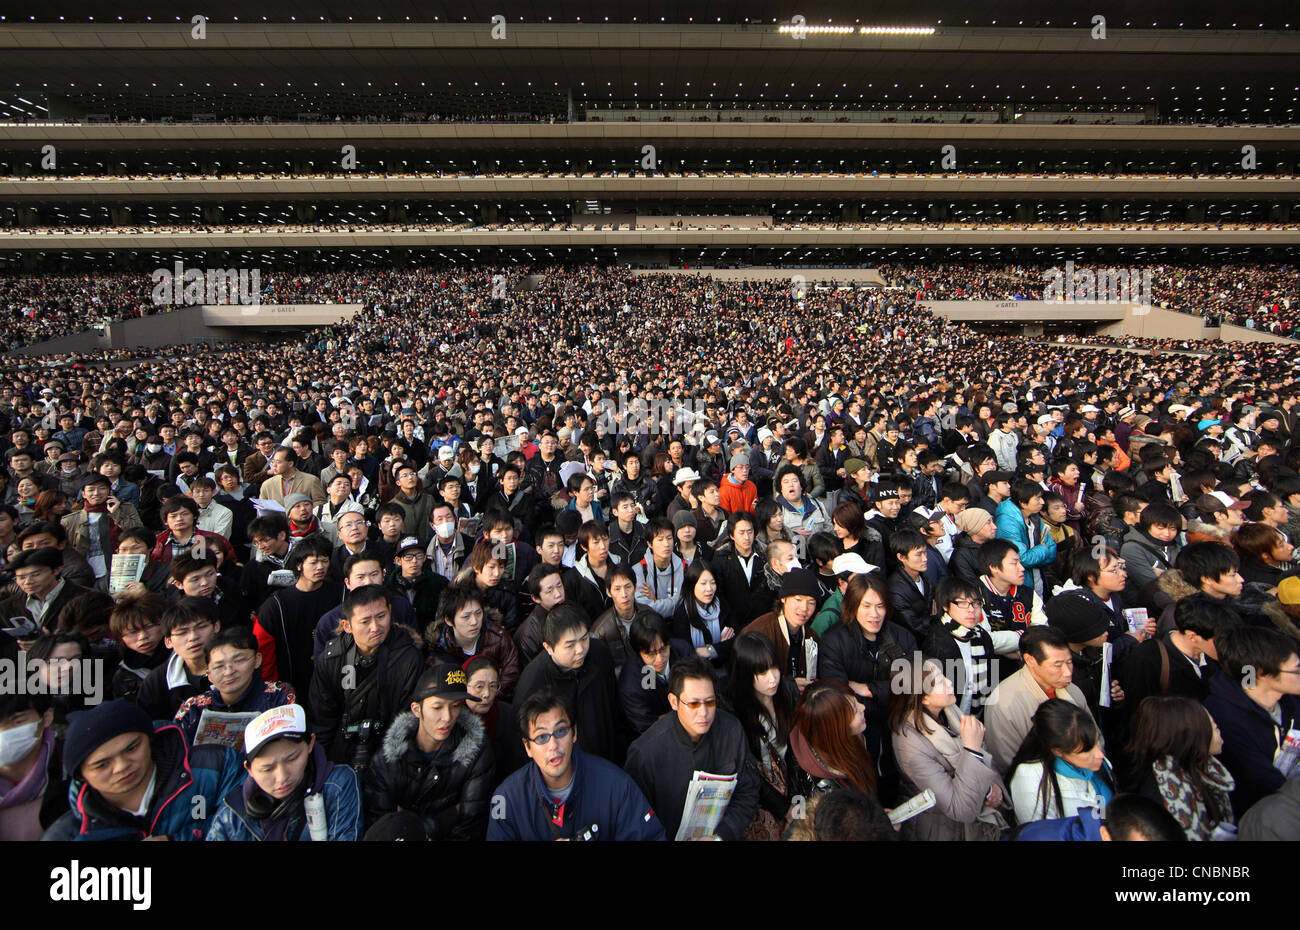 Spectators at the Fuchu horse race track during the Japan Cup, Tokyo, Japan - Stock Image